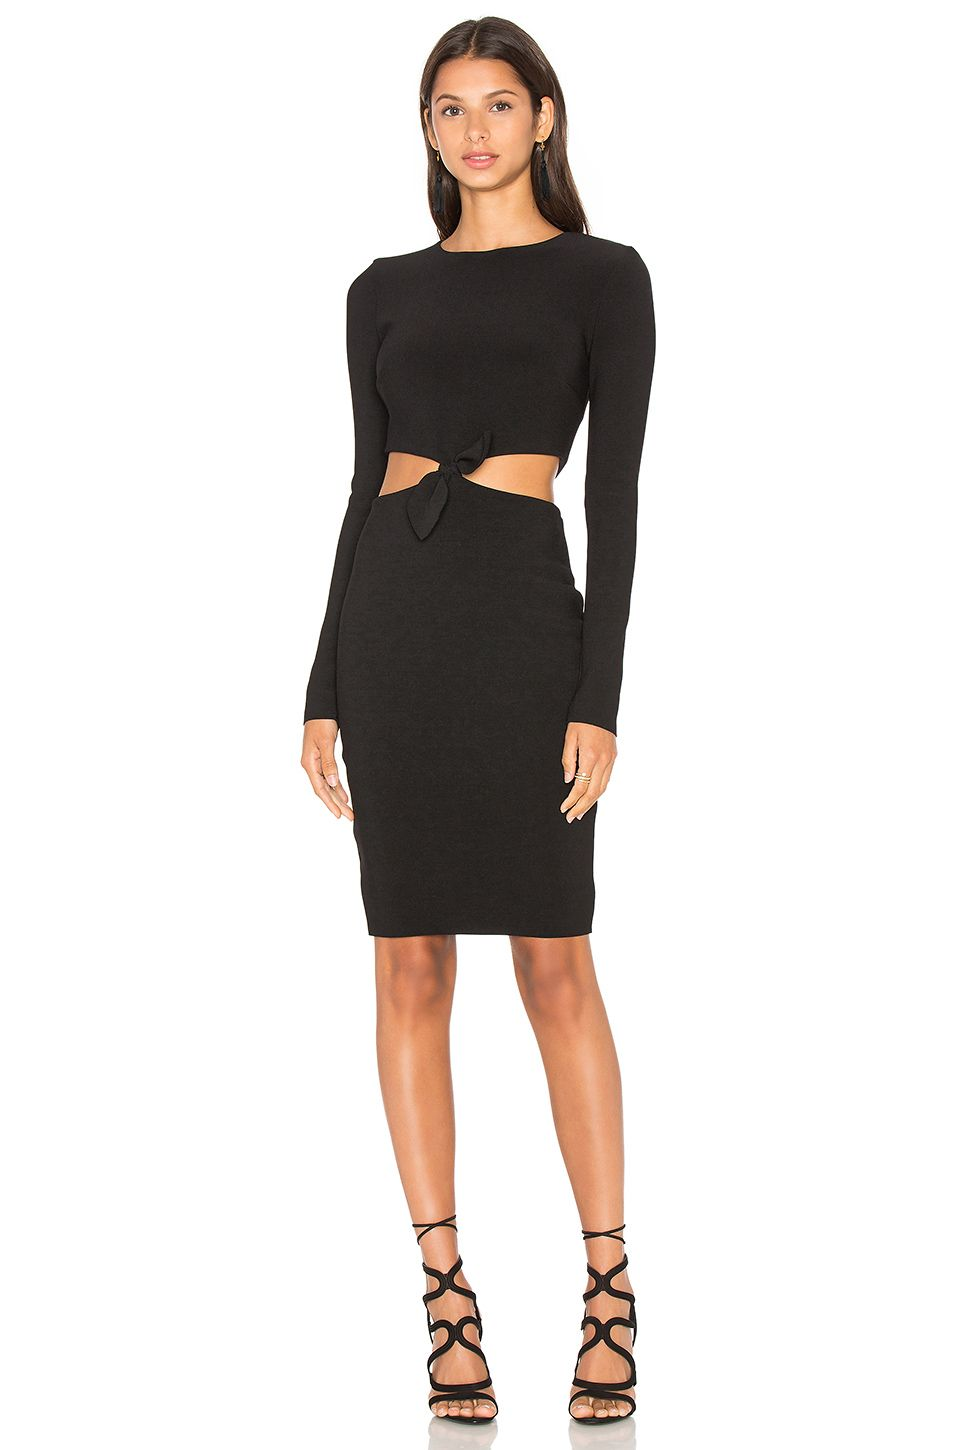 BEC&BRIDGE Lucienne Long Sleeve Dress in Black